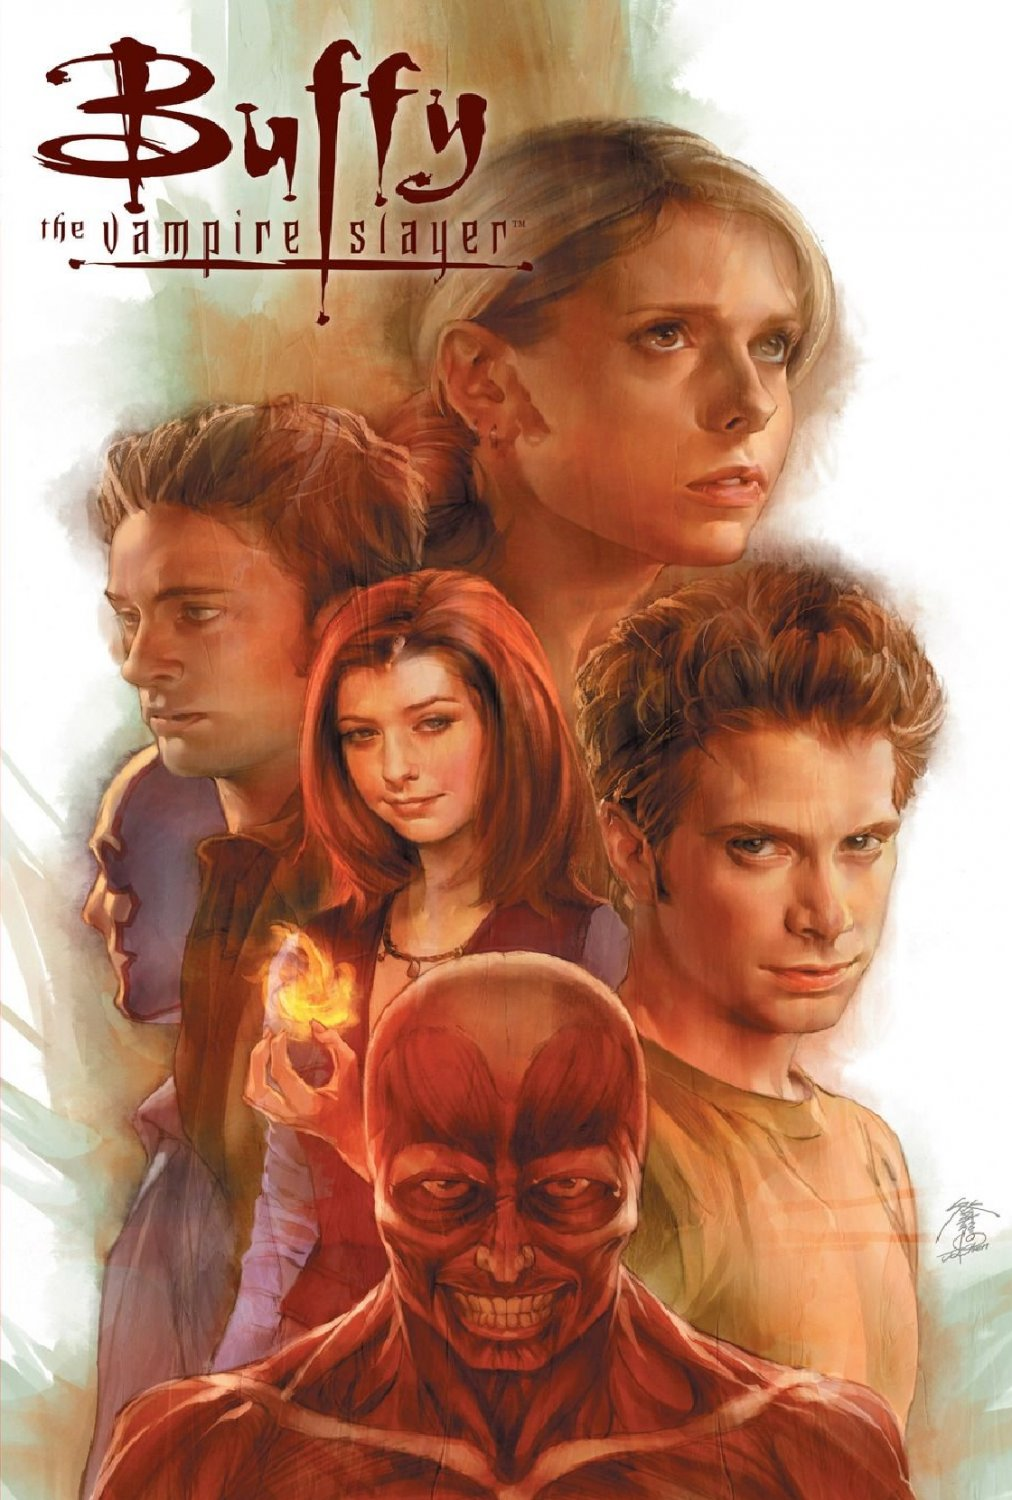 Buffy the Vampire Slayer Tv Show Poster 13x19 inches